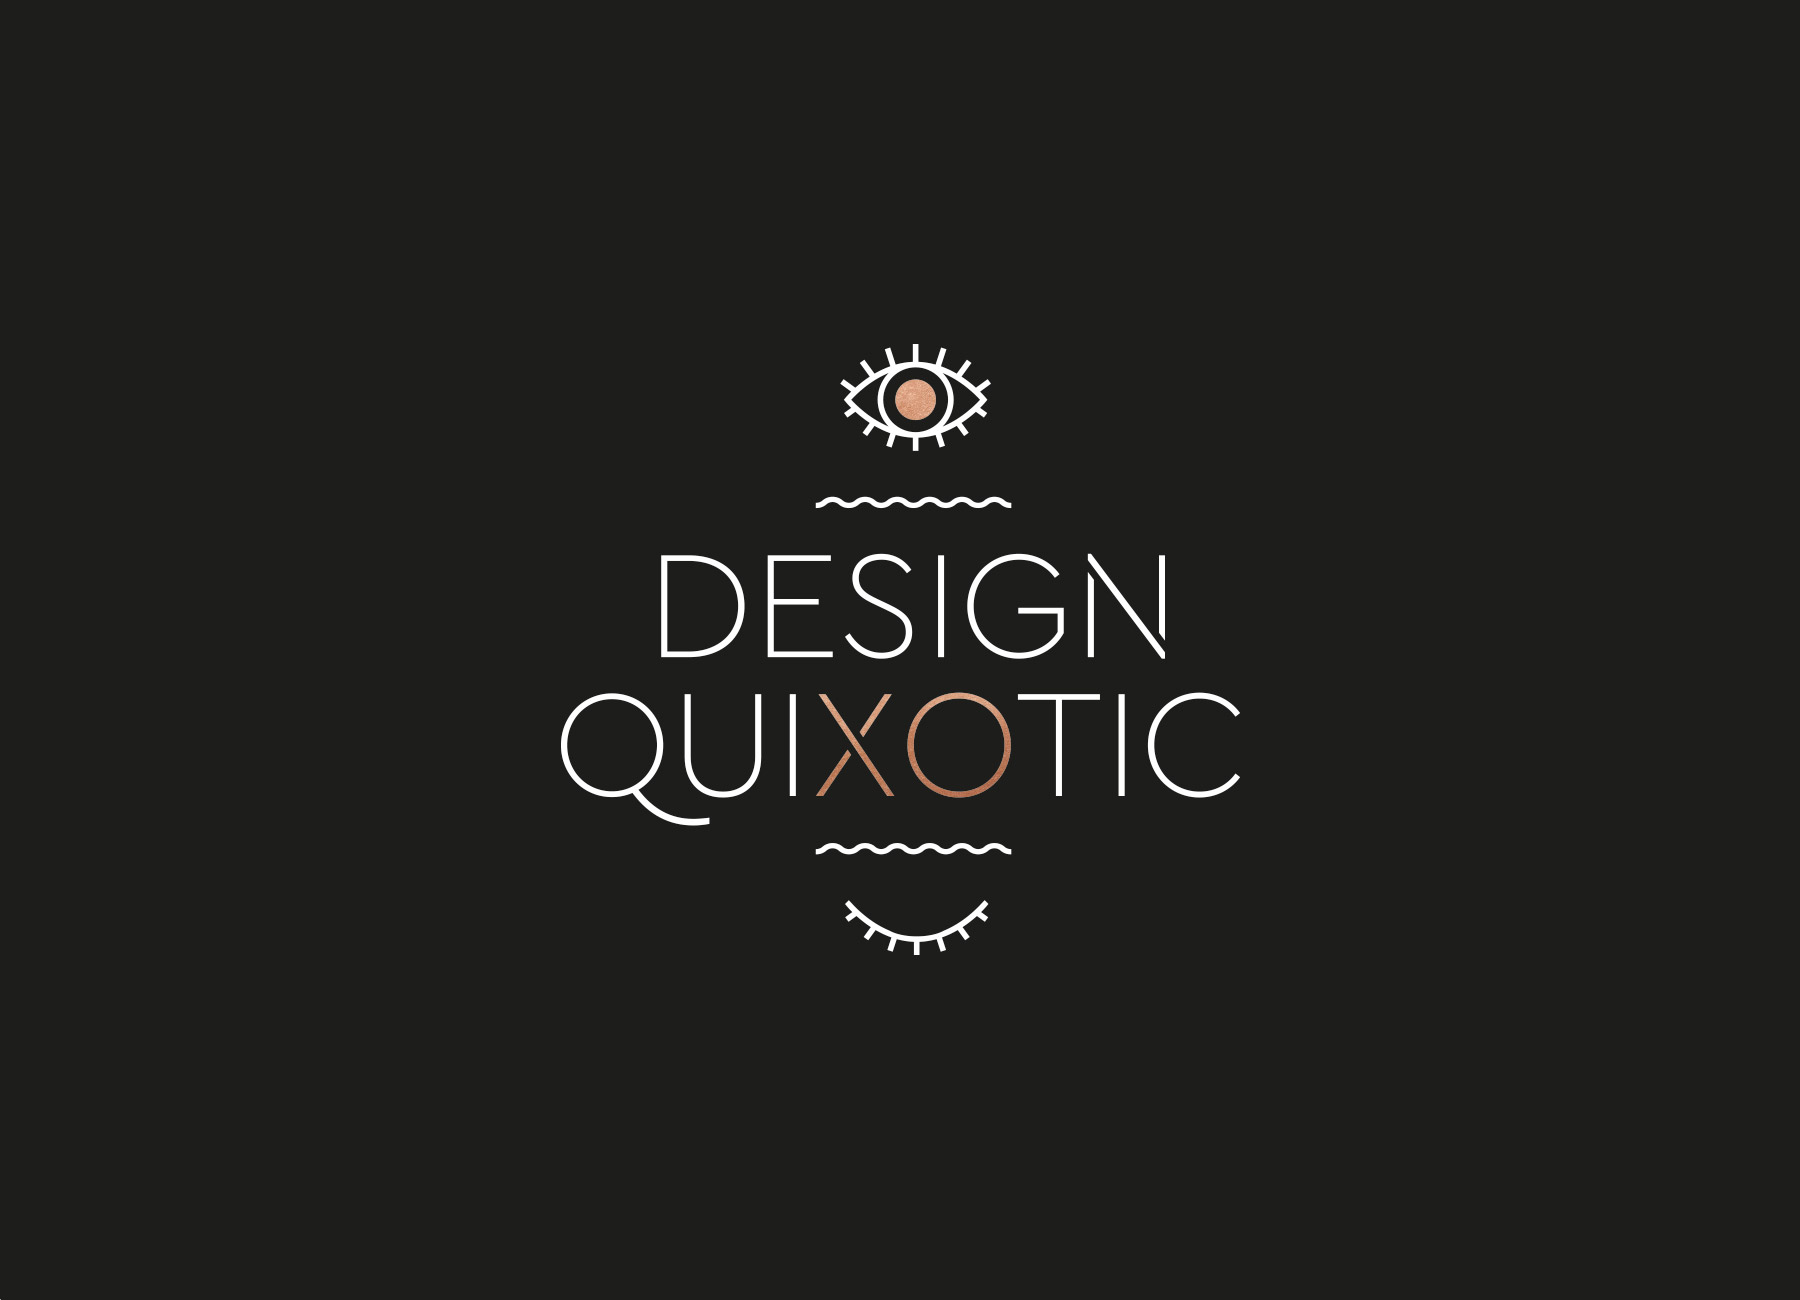 BRANCH | DESIGN QUIXOTIC